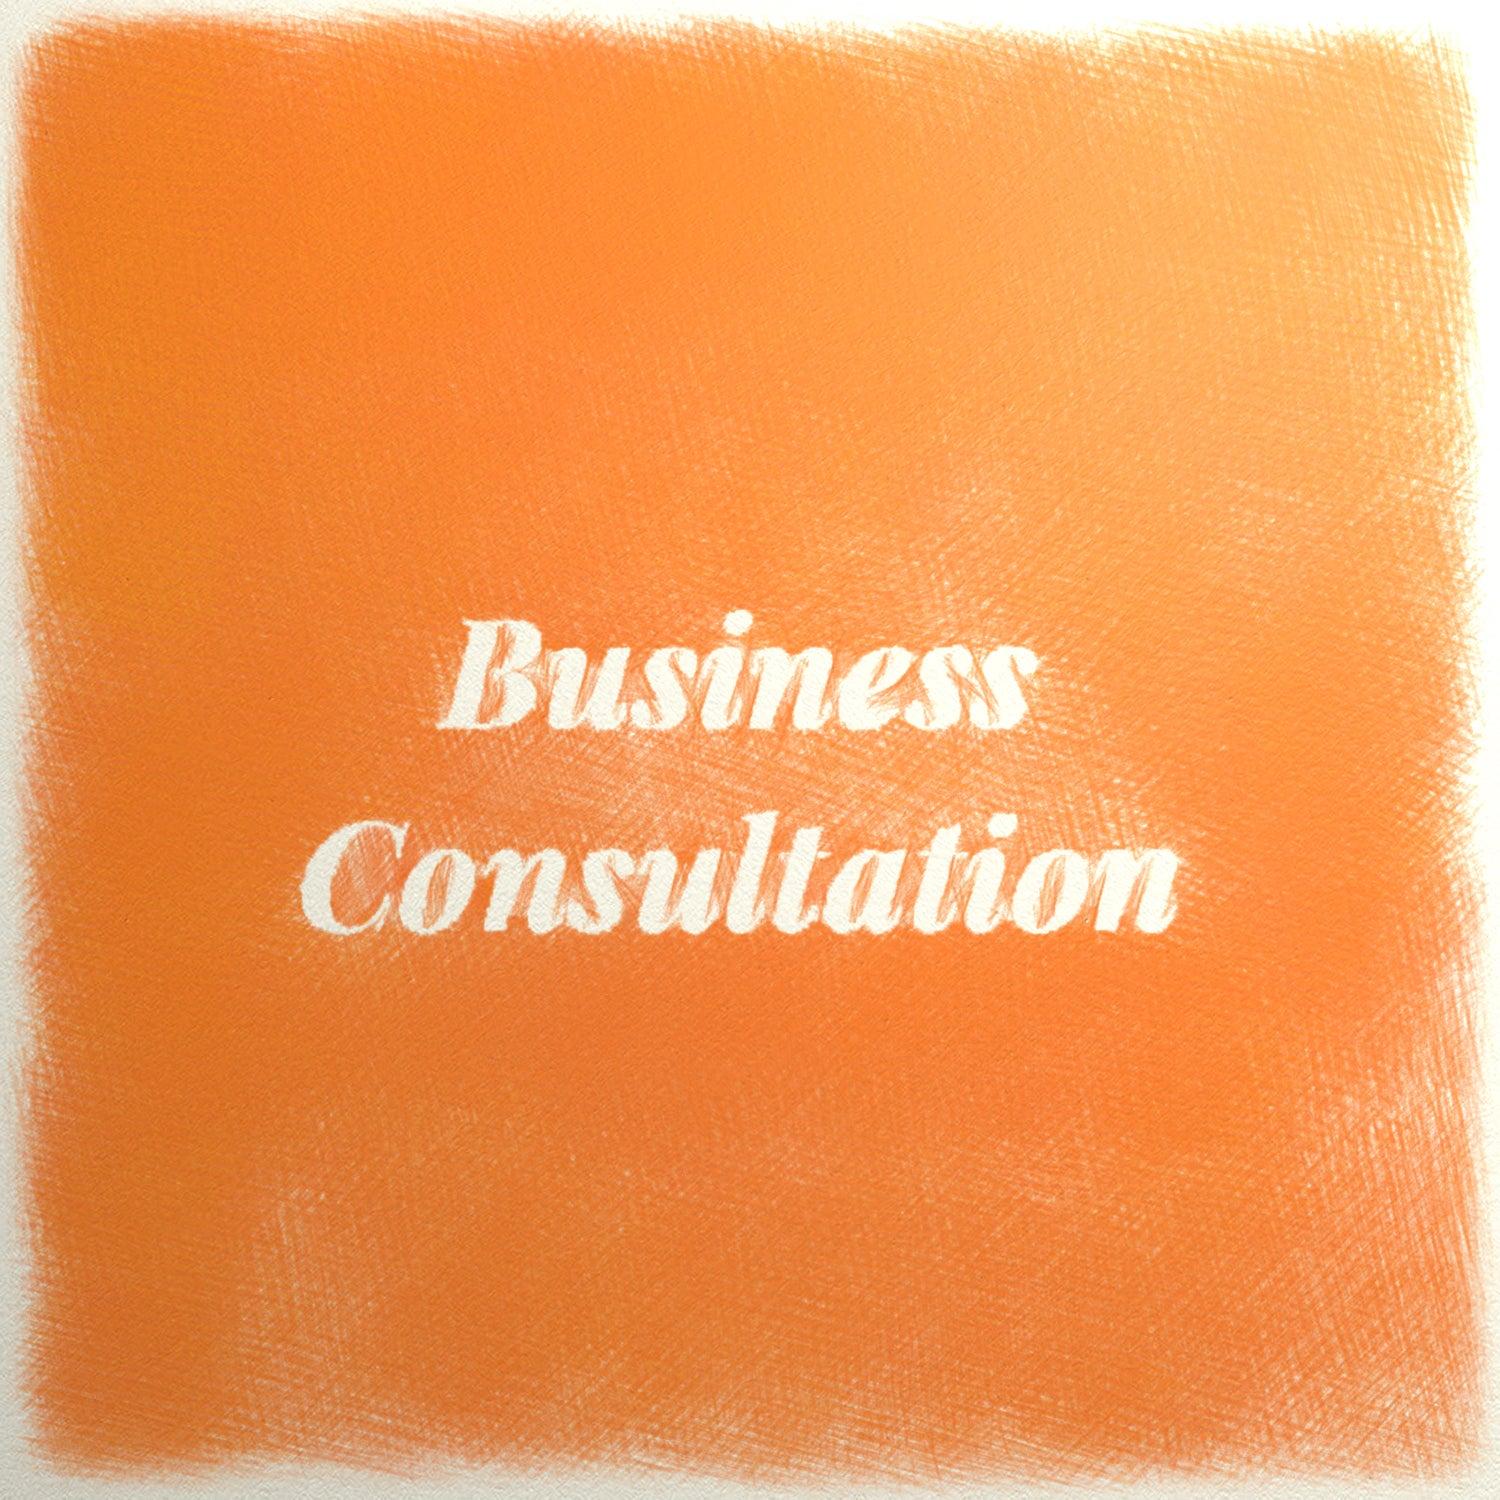 Image of Business Consultation